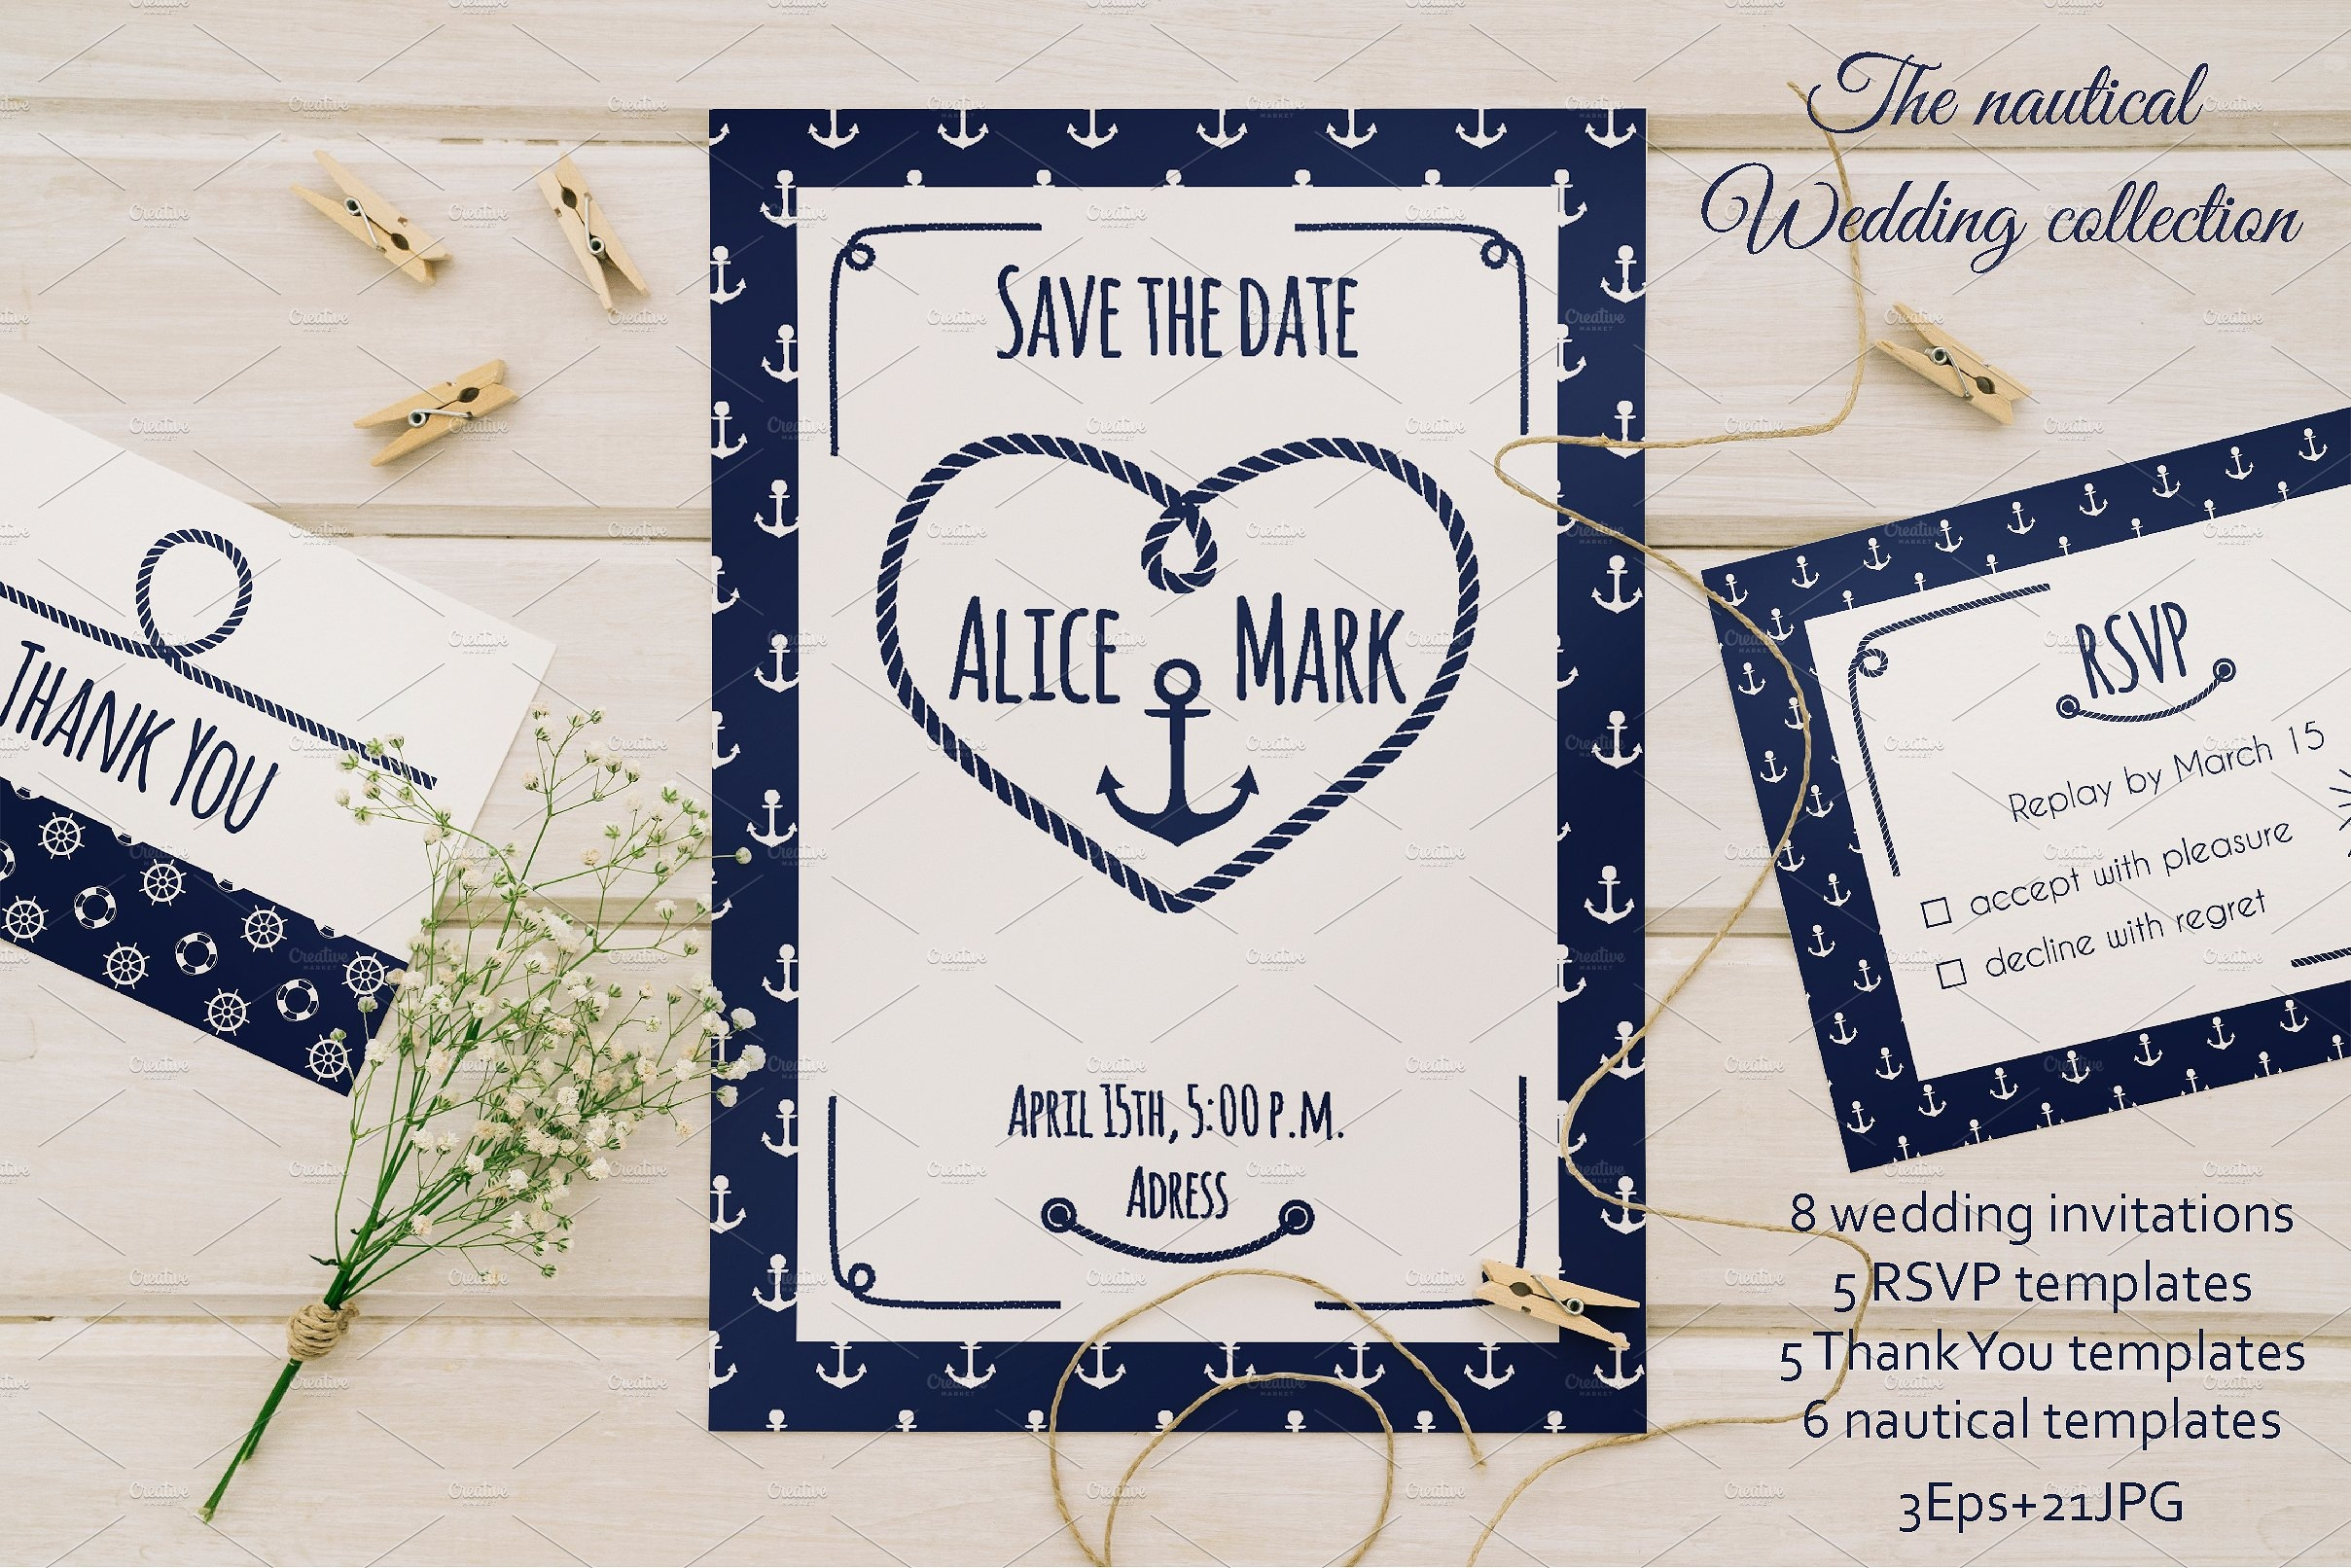 15+ Nautical Wedding Invitation Designs and Examples - PSD, AI